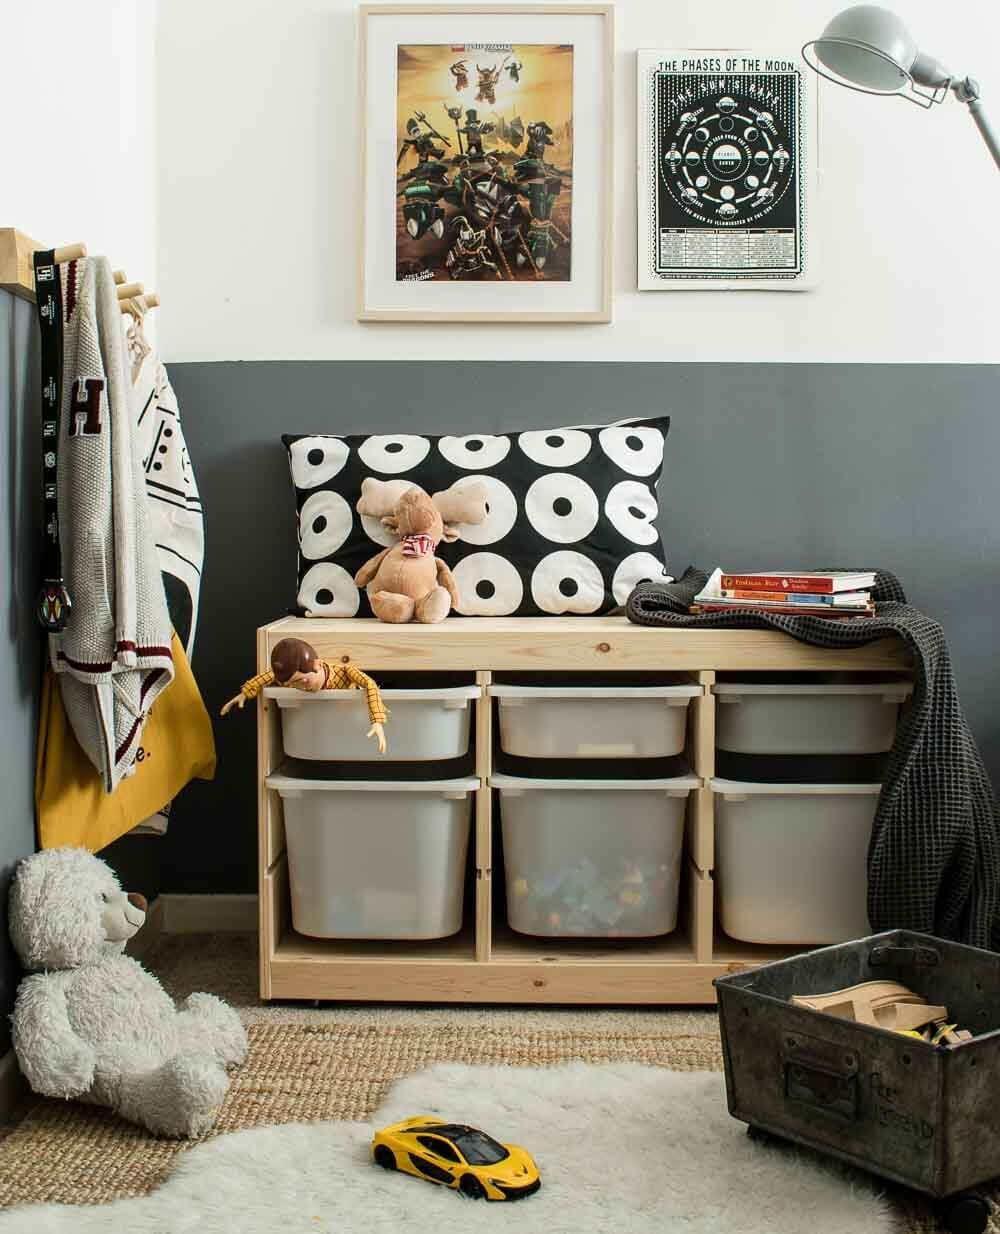 IKEA TOFAST HACKS - A Pine trofast unit against a grey wall surrounded by kids toys